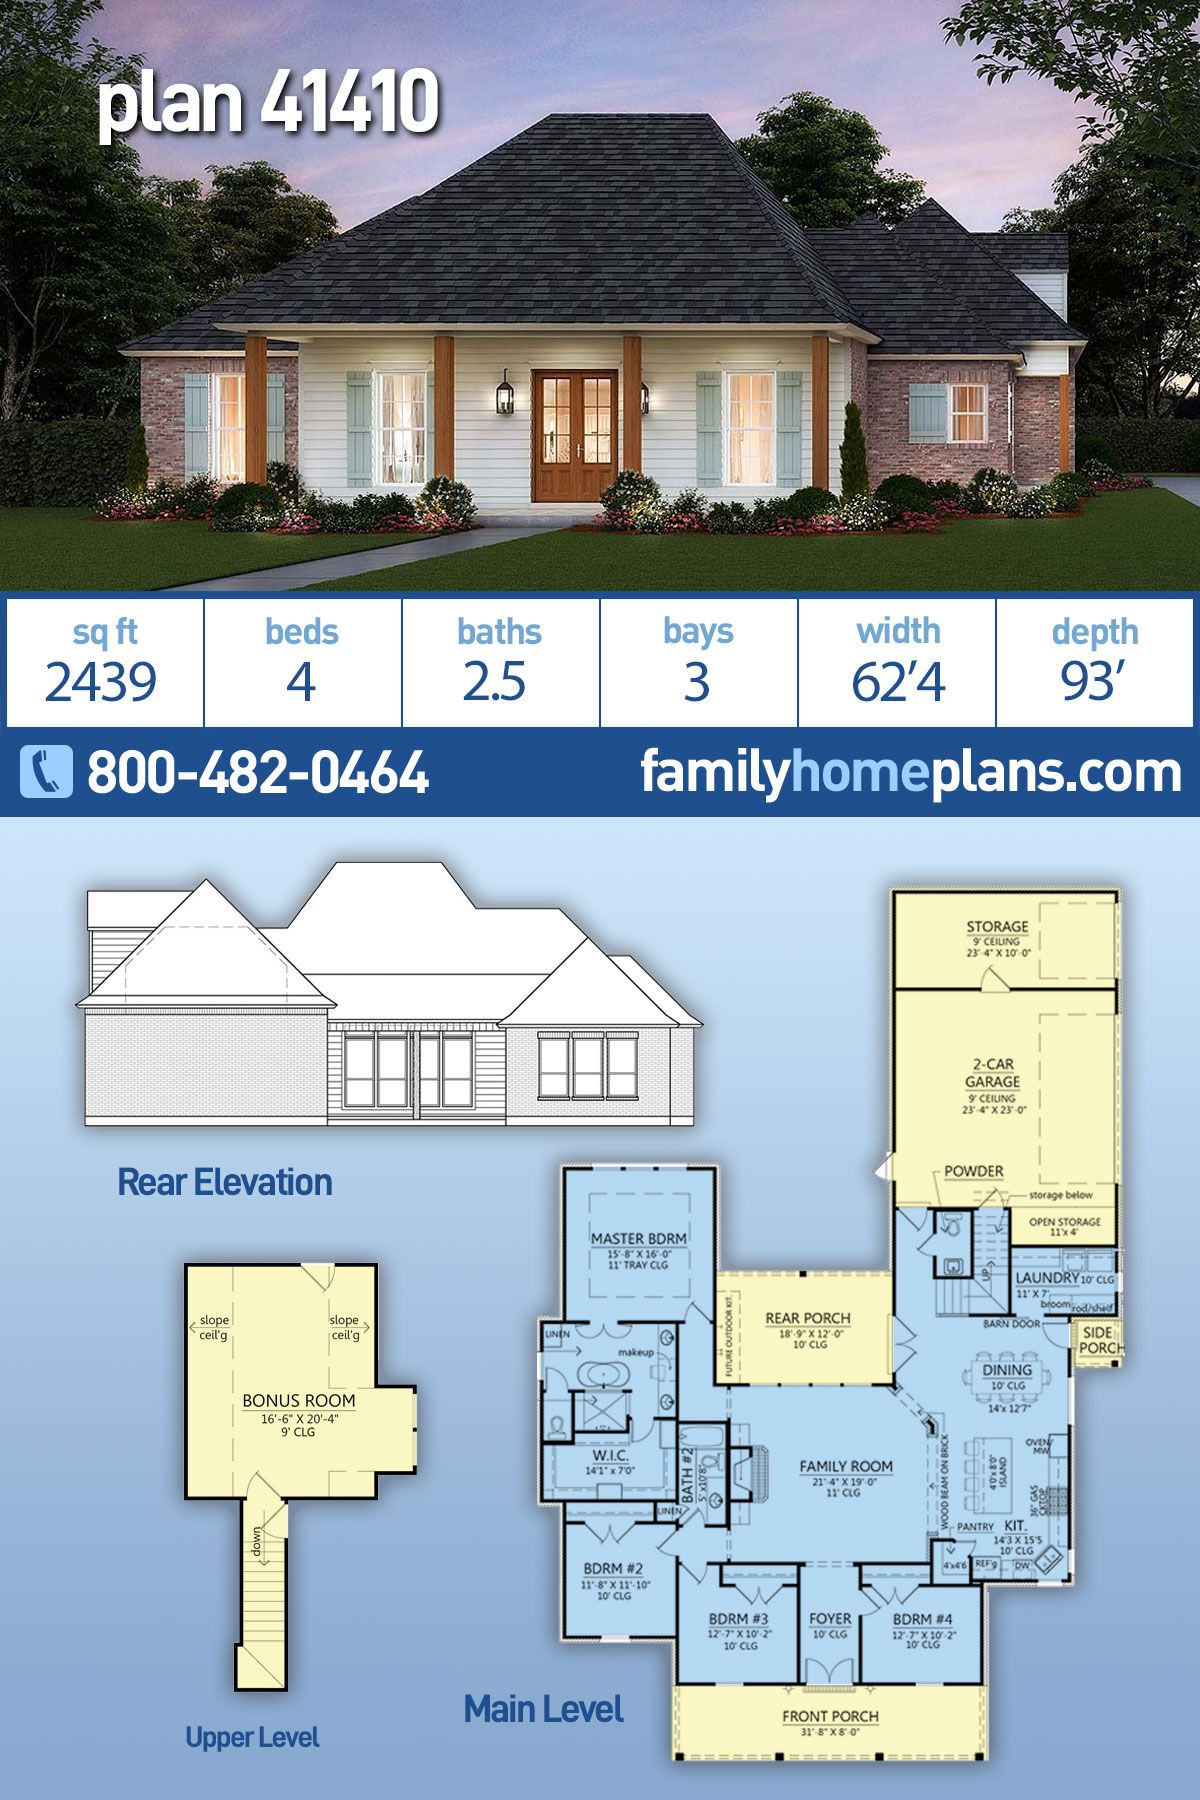 Traditional Style House Plan 41410 With 4 Bed 3 Bath 3 Car Garage In 2020 Floor Plans House Plans Craftsman House Plans